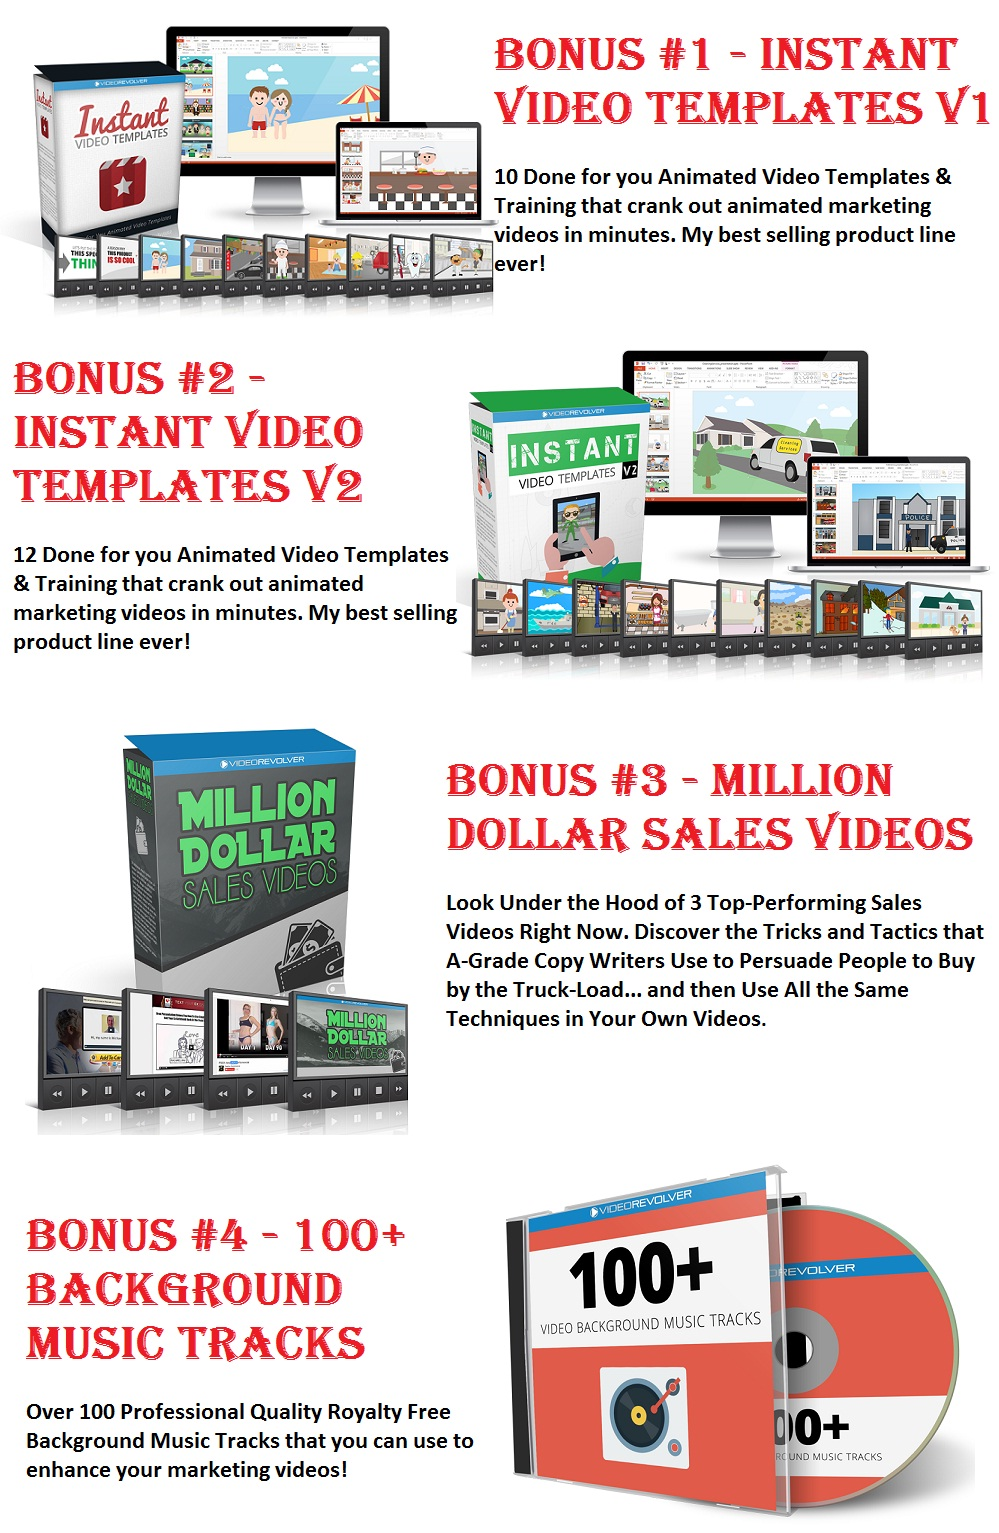 Video Bookmarker Bonus